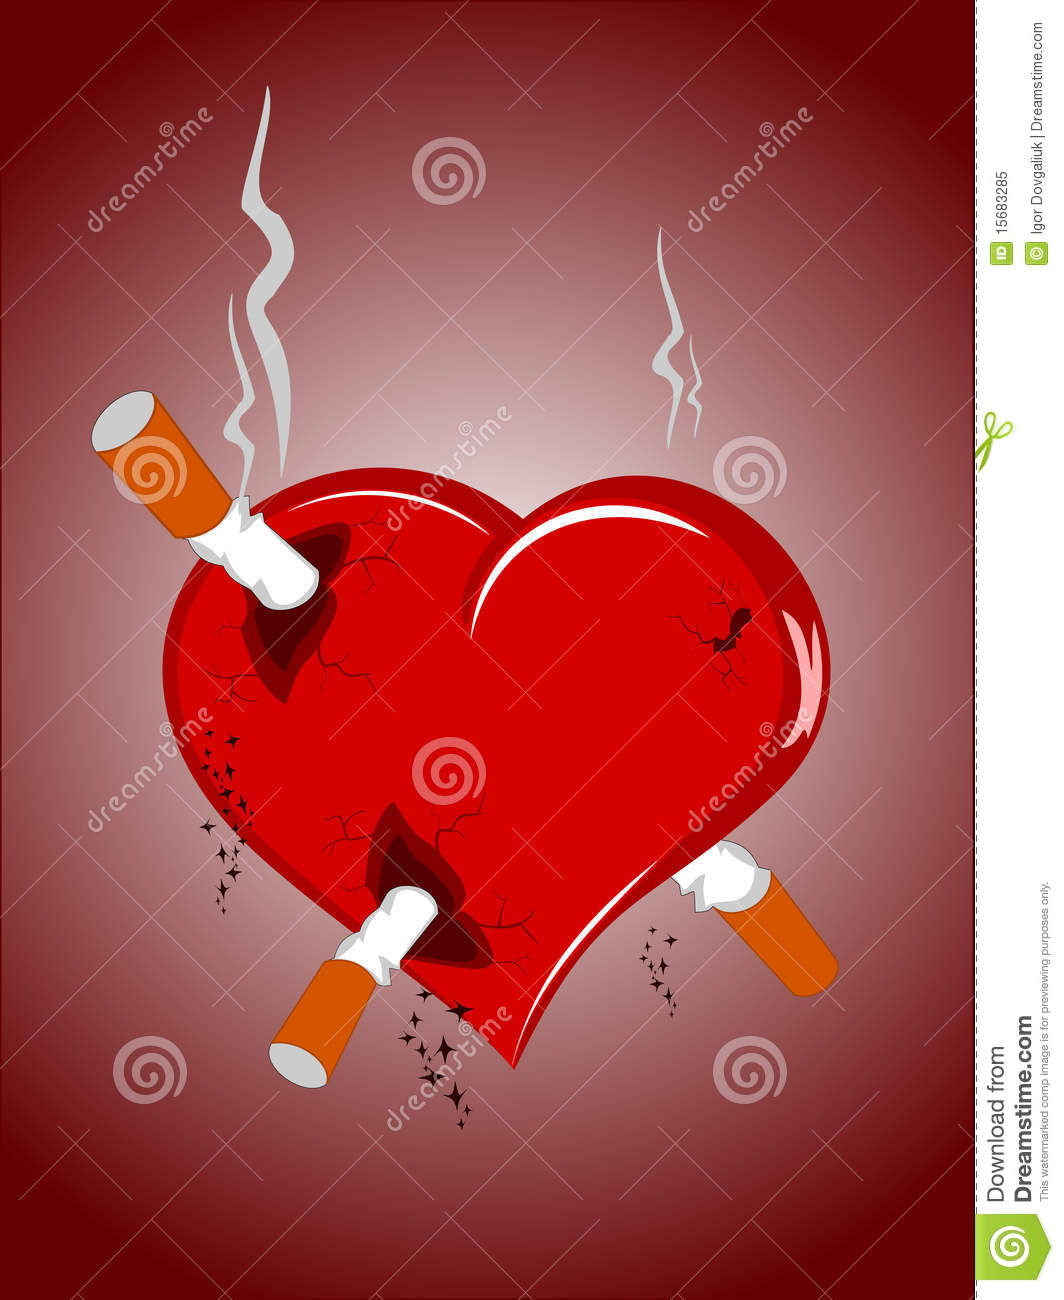 coeur avec des cigarettes photo libre de droits image. Black Bedroom Furniture Sets. Home Design Ideas